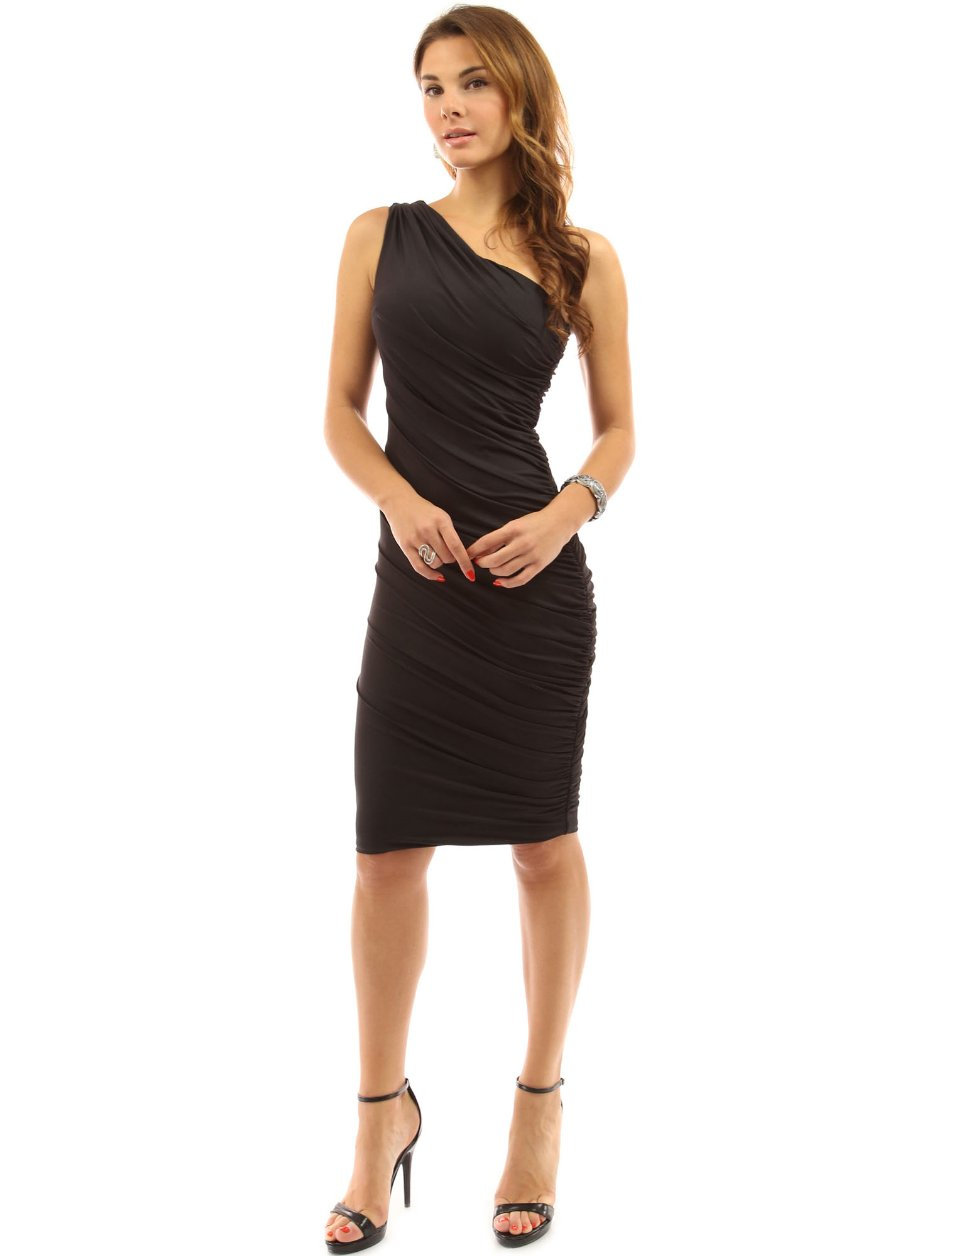 PattyBoutik-Womens-One-Shoulder-Cocktail-Dress